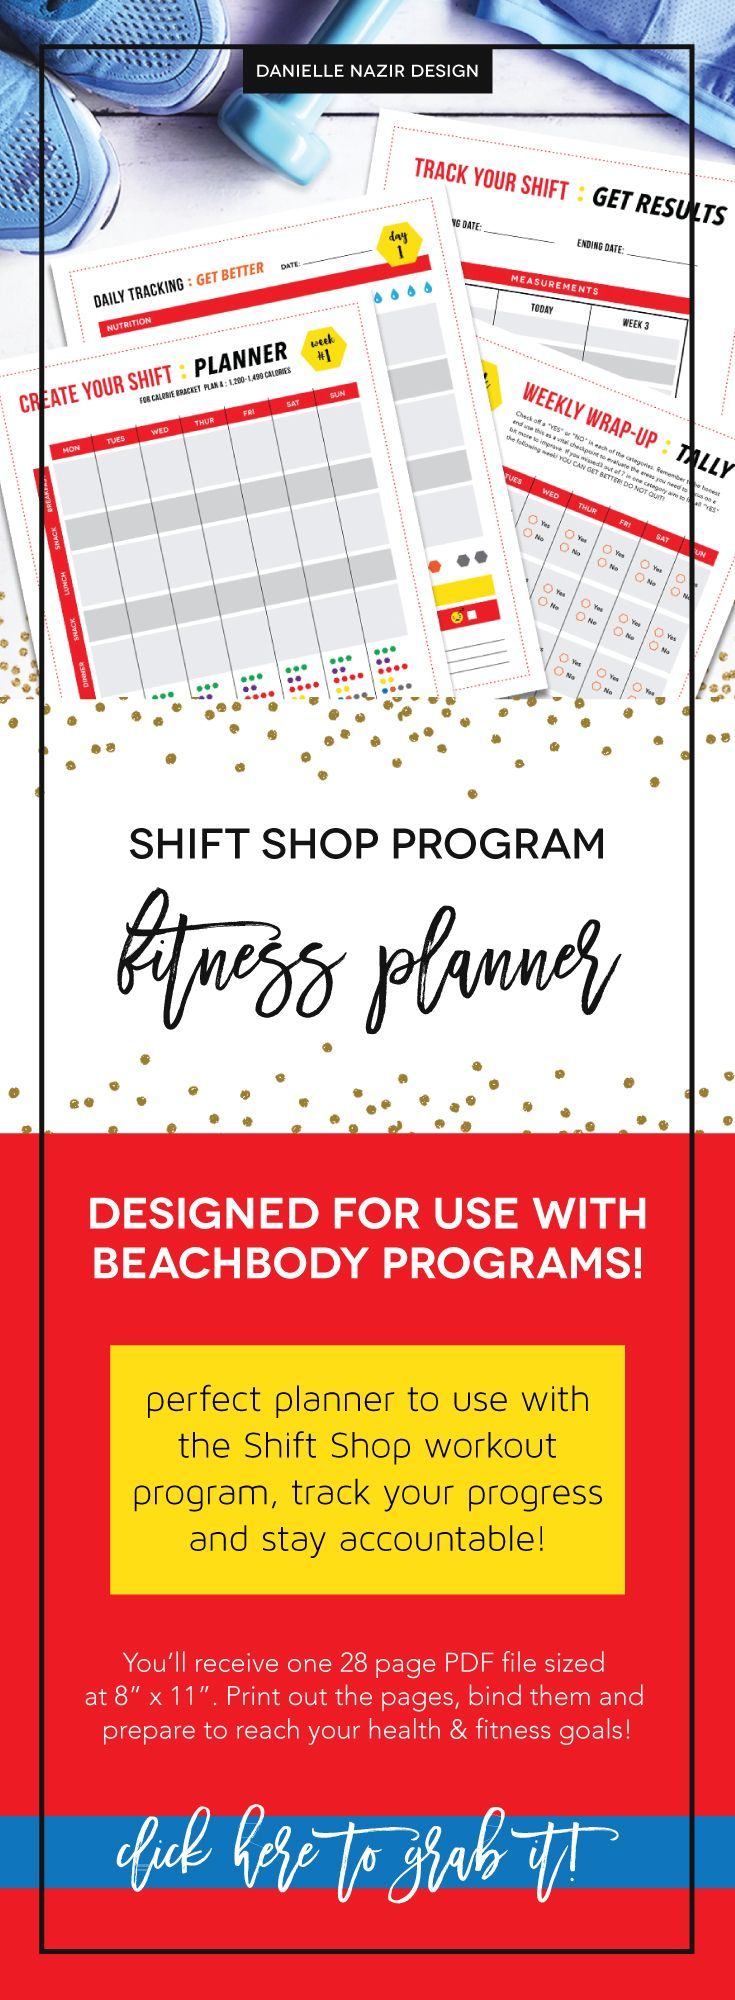 Shift Shop Fitness & Nutrition Planner : PLAN A // The perfect fitness planner for doing the Shift Shop Beachbody workout program. Plan each week's meals and workouts. Then daily track your nutrition, workout, mood and make notes on what to improve. At the end of each week fill out the tally sheet and recognize your win and what needs improvement. Also a sheet for before and after measurements. // Shift Shop // Beachbody's Shift Shop // Shift Shop Fitness Planner // Shift Shop tracking sheet…